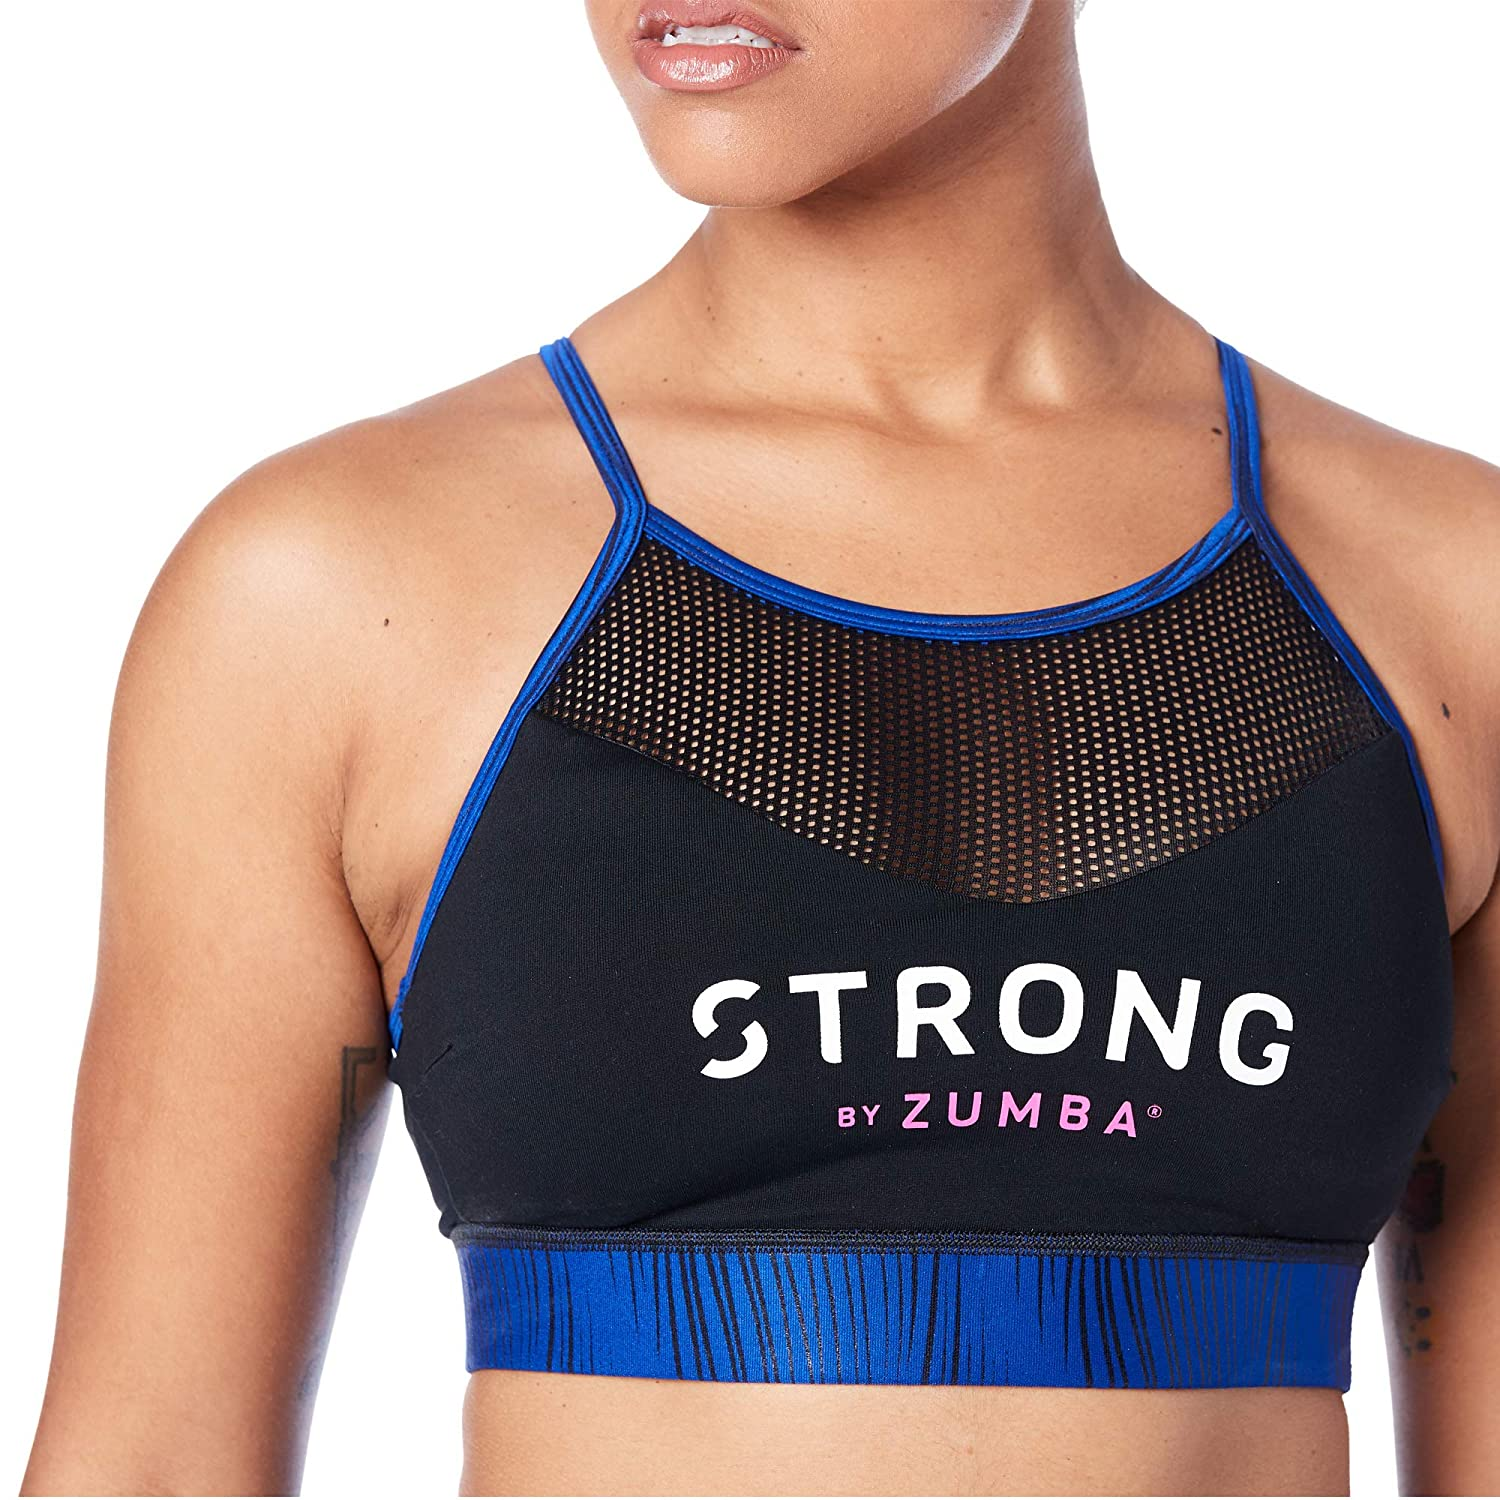 STRONG by Zumba Gym Athletic High Neck Mesh Inserts Workout Bras for Women